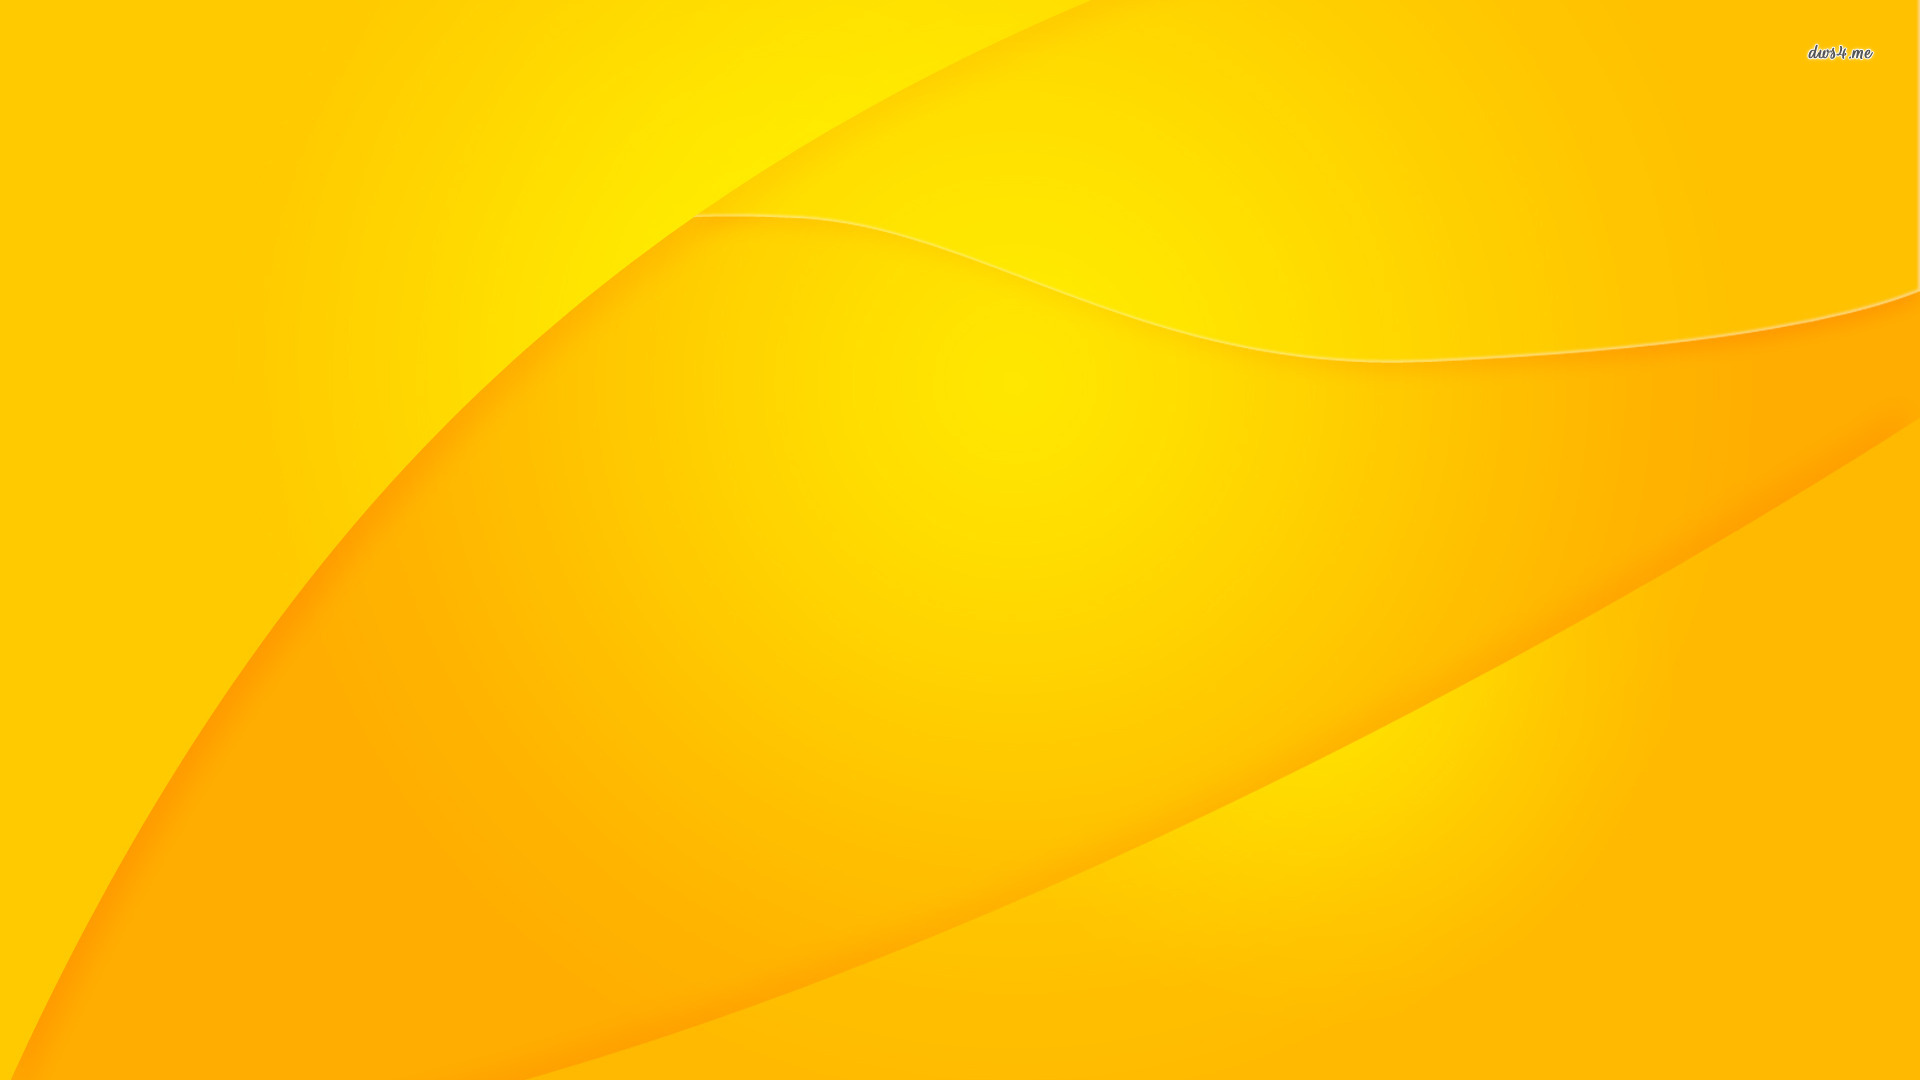 Wallpapers for Gt Light Yellow Abstract Backgrounds